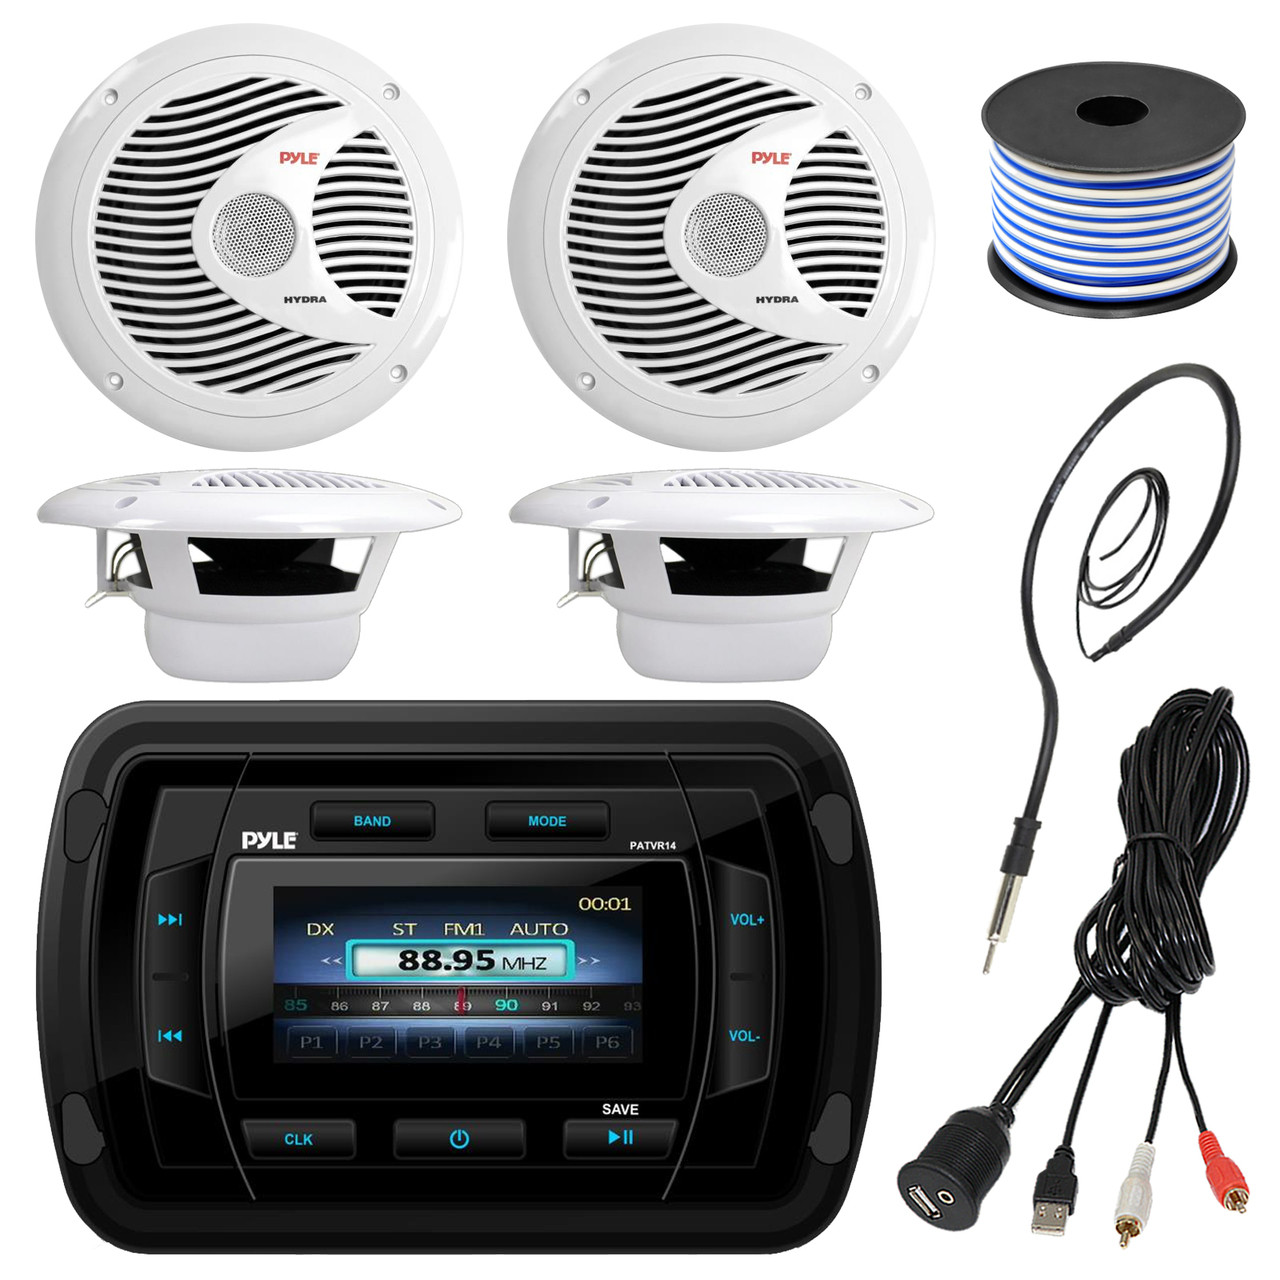 pyle patvr14 mp3/mp5 bluetooth marine boat yacht stereo receiver bundle  combo with 4x white 6-1/2'' dual cone waterproof stereo speaker + enrock  radio